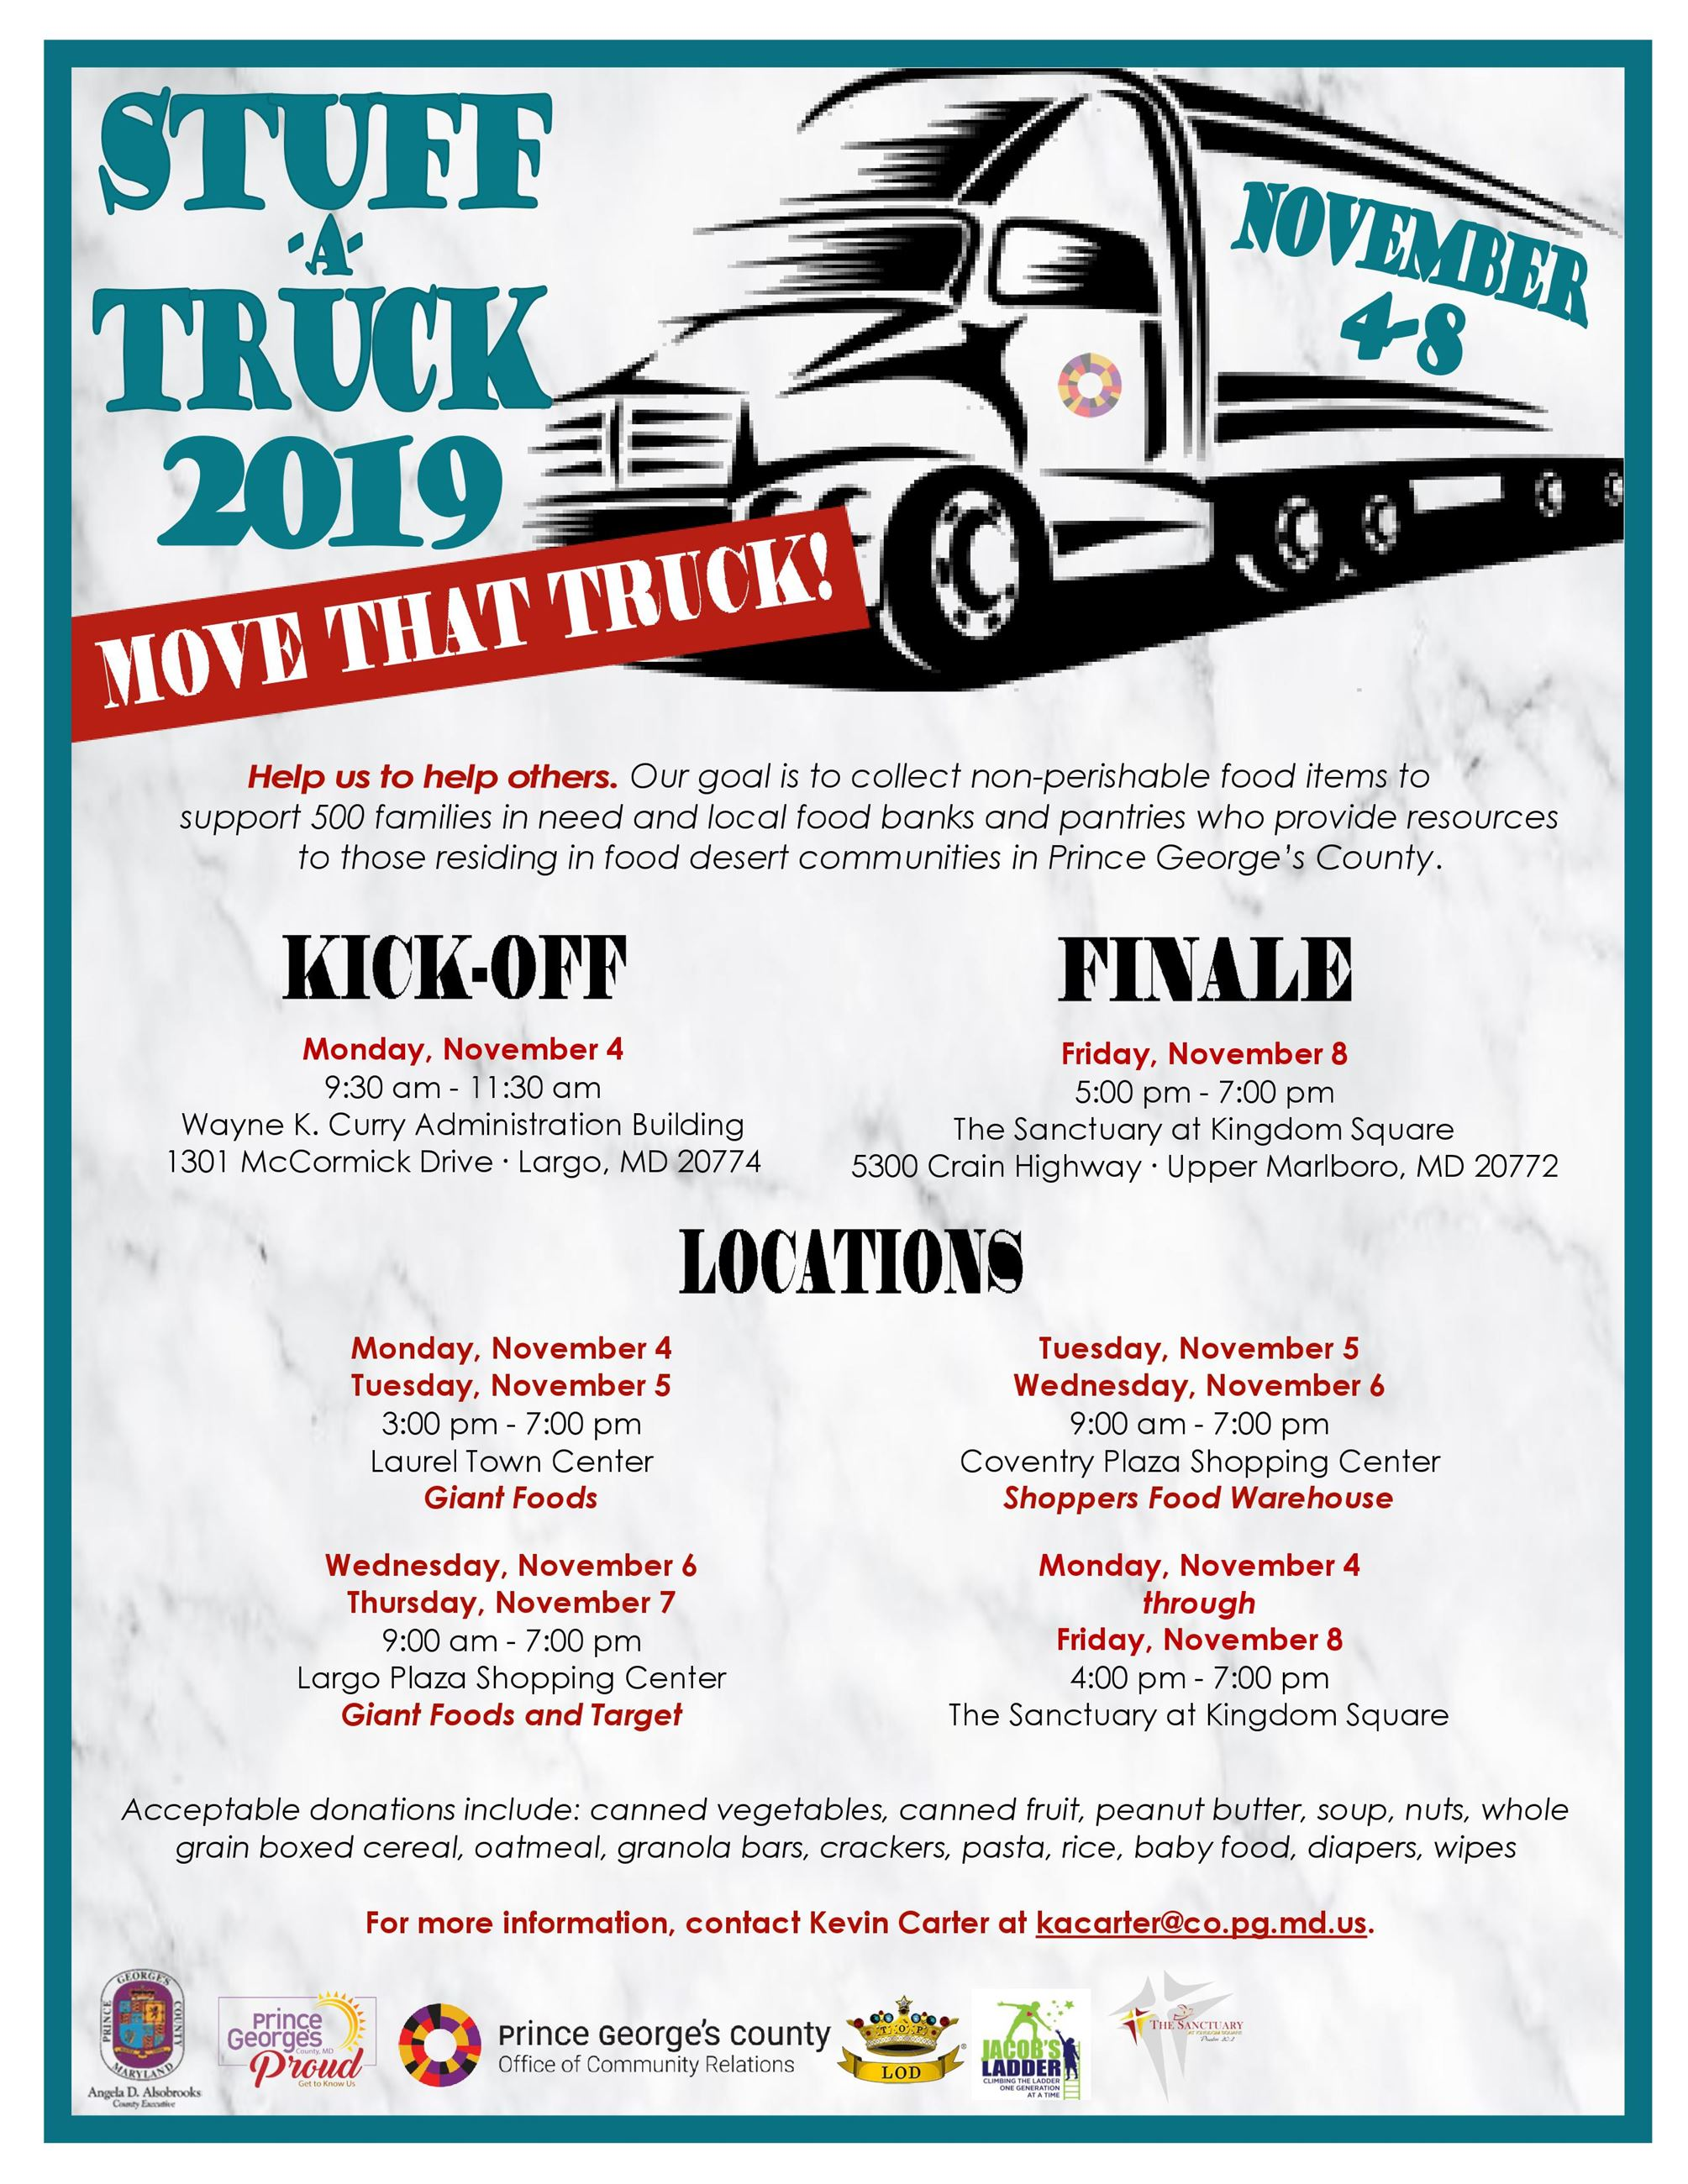 Flyer for Stuff-A-Truck 2019